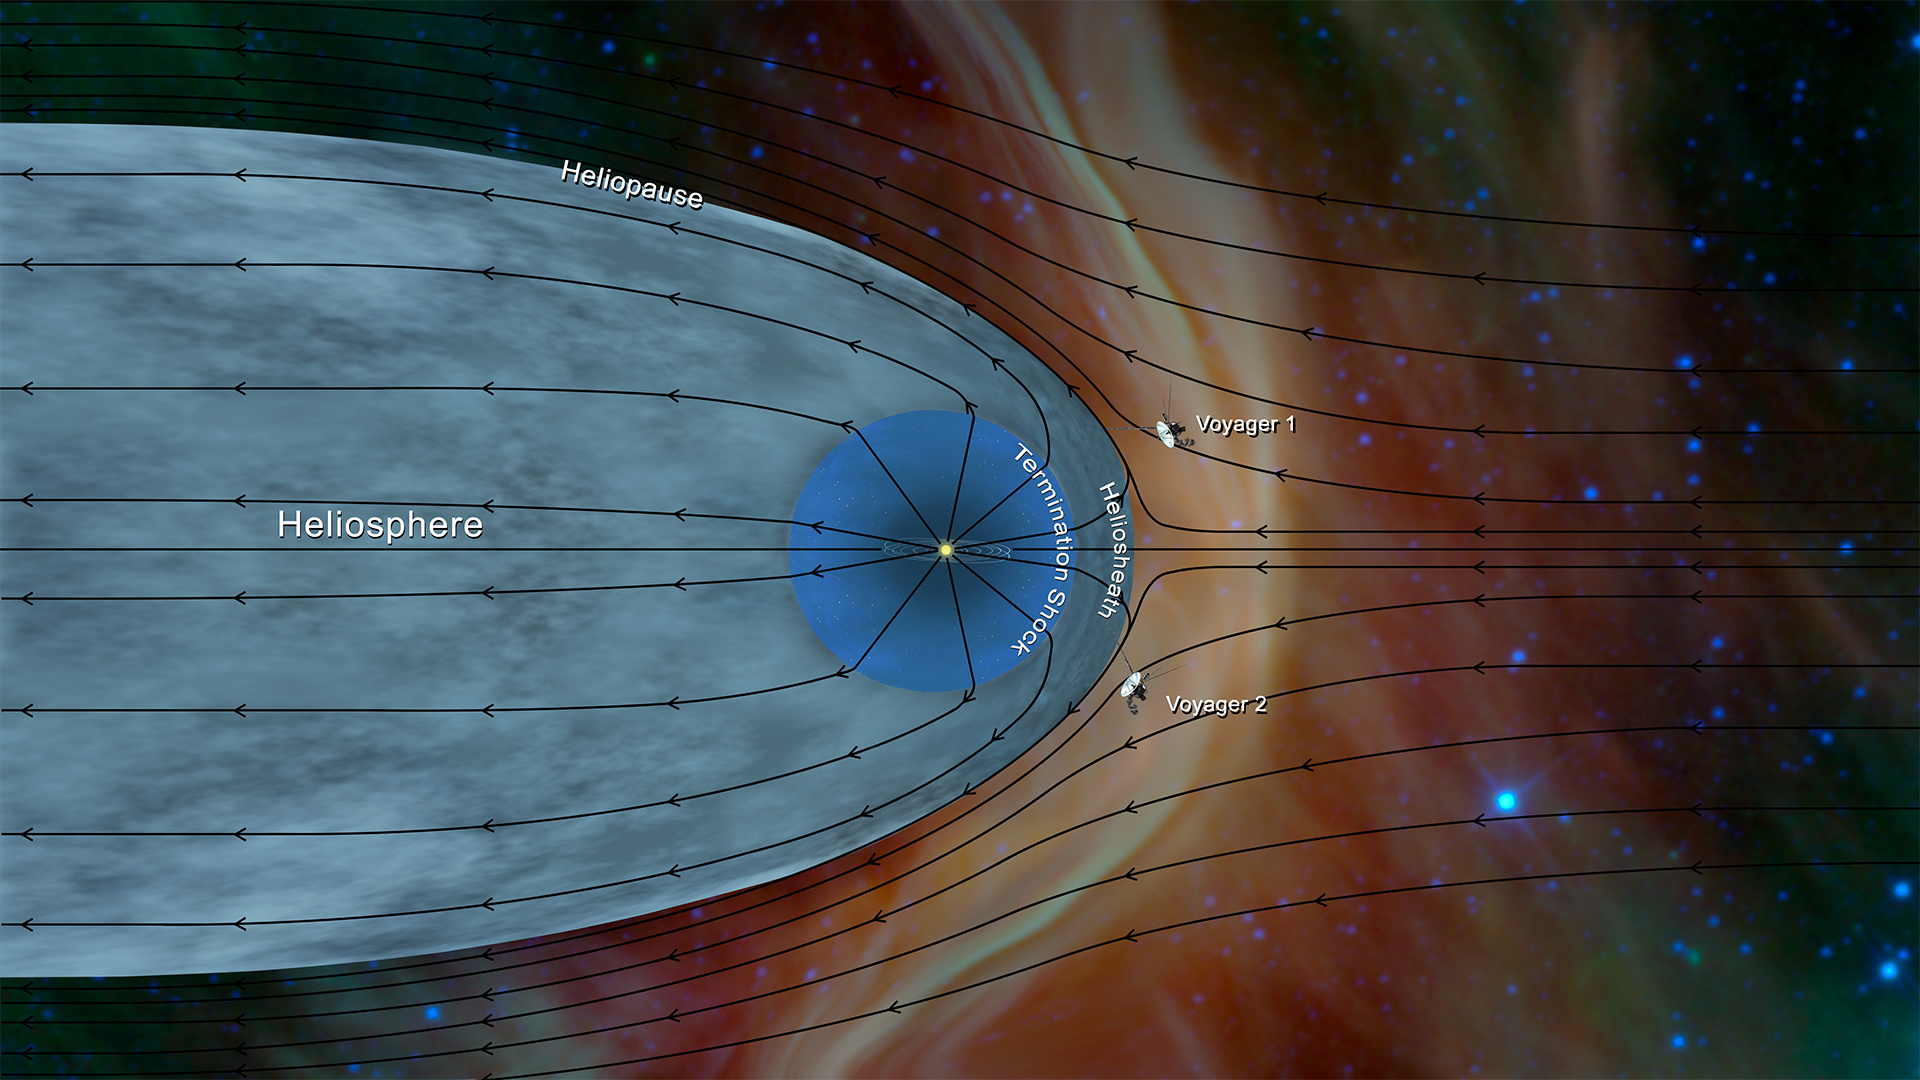 Data from the NASA spacecraft Voyager 2 has helped further characterize the structure of the heliosphere - the wind sock-shaped region created by the sun's wind as it extends to the boundary of the solar system, as depicted in this image released by NASA.   NASA Jet Propulsion Laboratory/Handout via REUTERS ATTENTION EDITORS - THIS IMAGE HAS BEEN SUPPLIED BY A THIRD PARTY